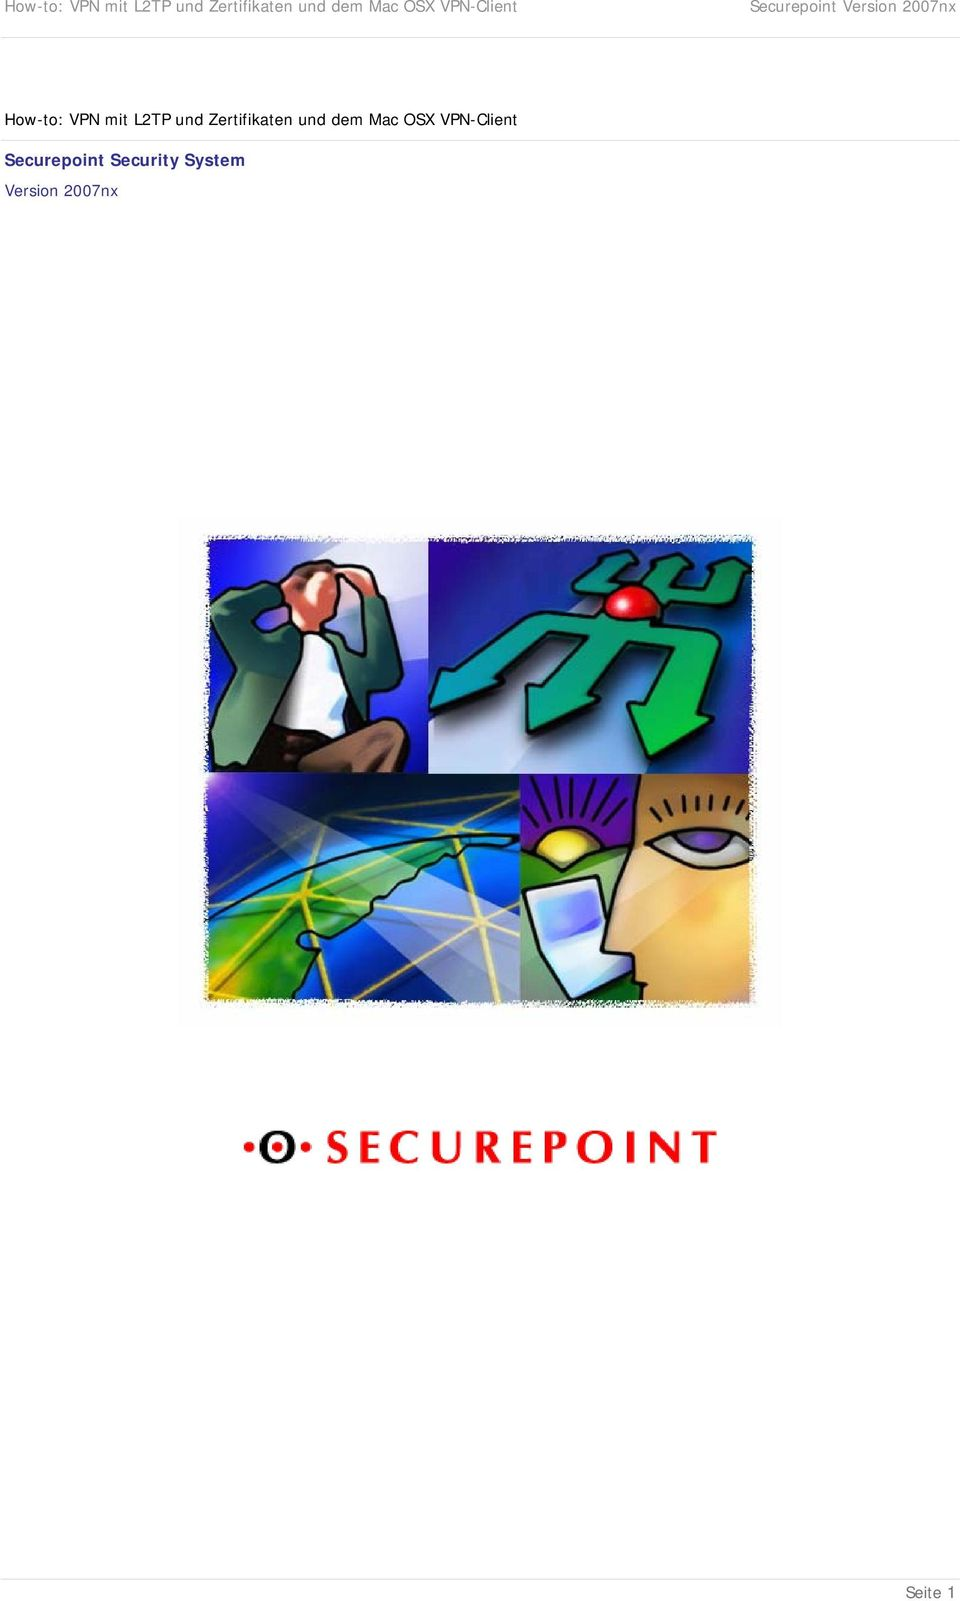 VPN-Client Securepoint